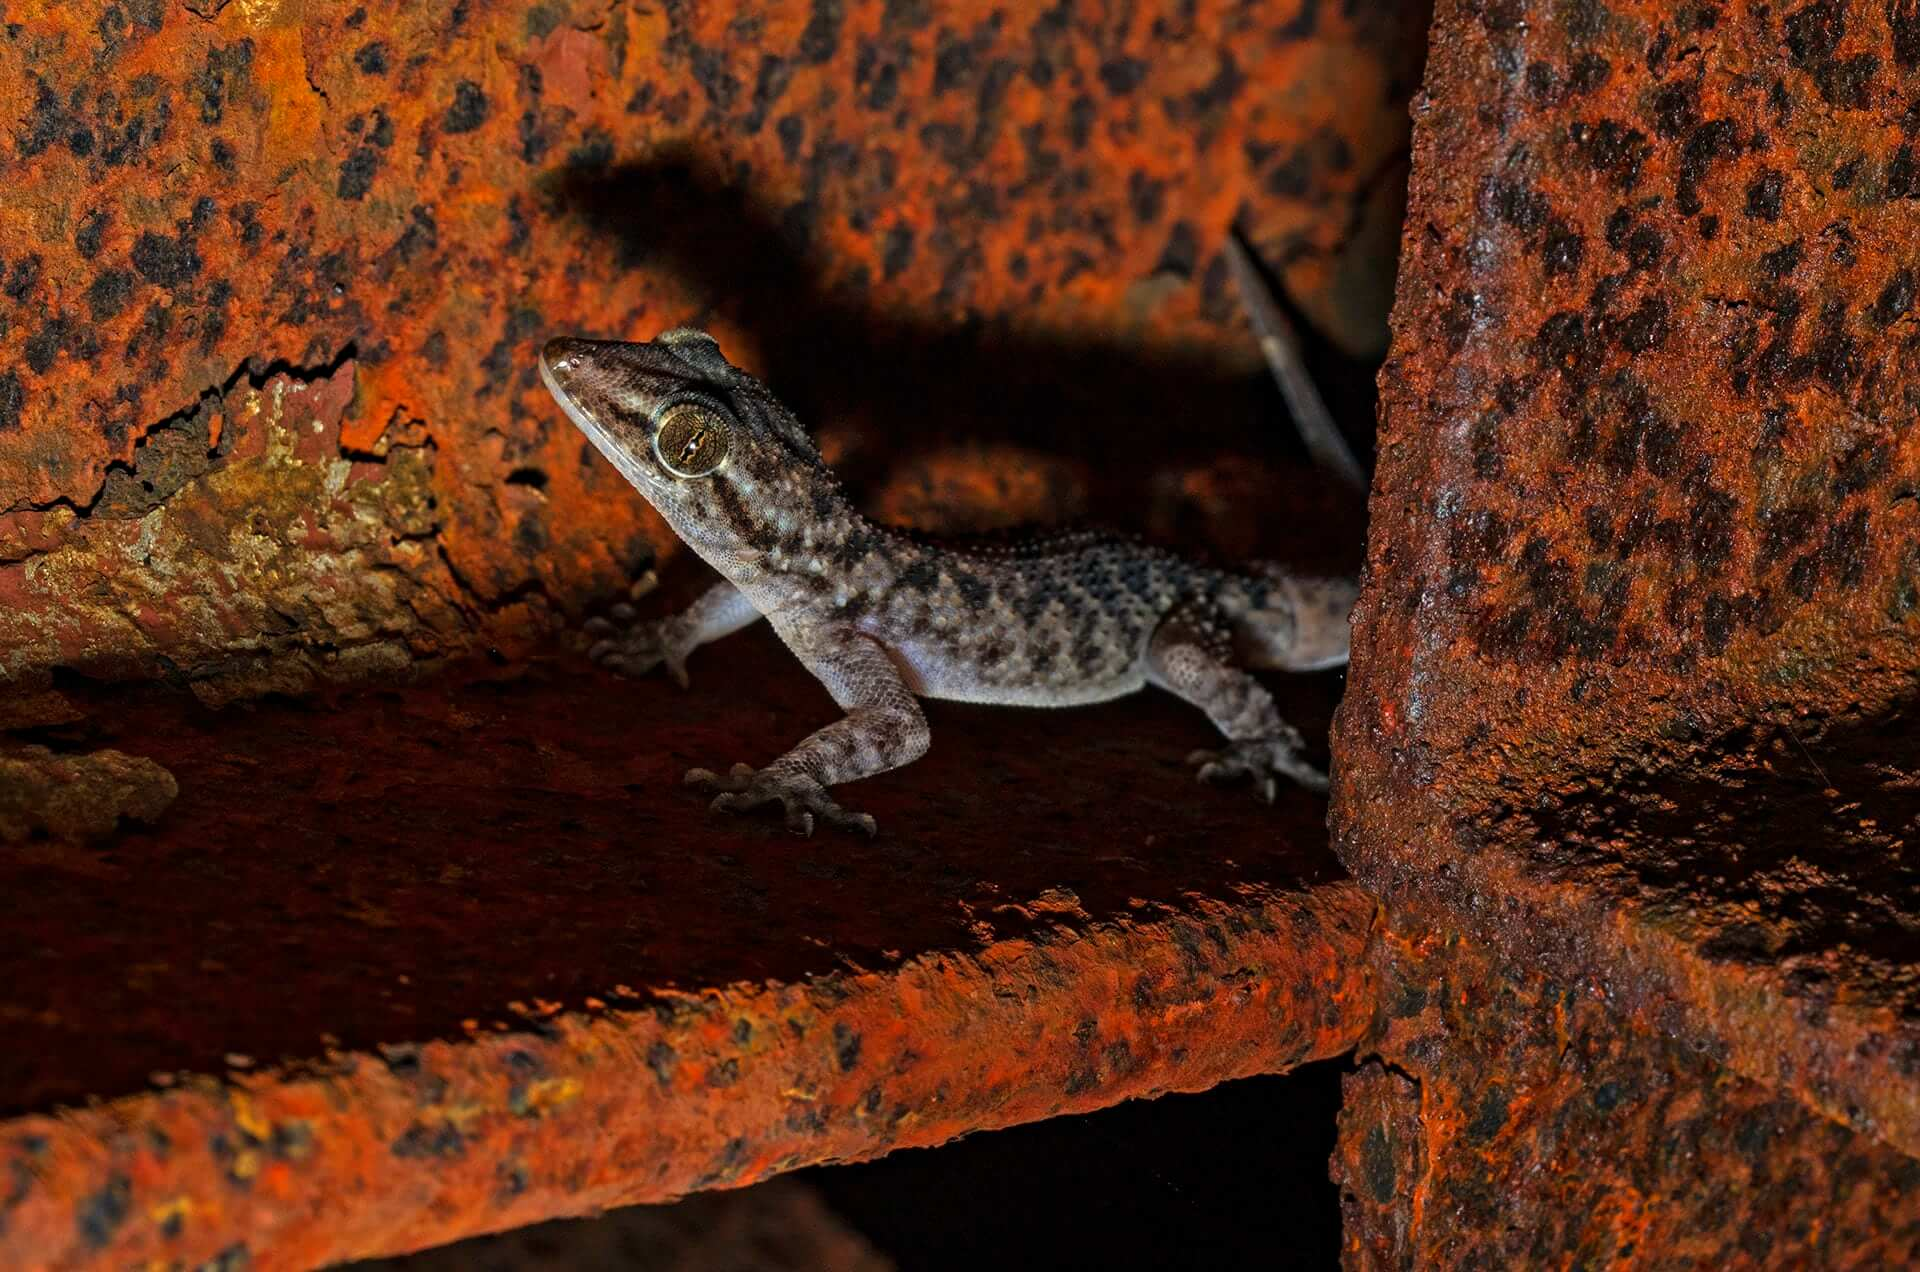 Mostly overlooked, the walls and crevices of Amboli — both manmade and natural — host some incredible species of geckos. This common, nocturnal gecko of Amboli was unknown until researchers described this as a new species — the Giri's brookish gecko (Hemidactylus varadgirii) — in 2019. This landscape still has many such undescribed species that need attention.